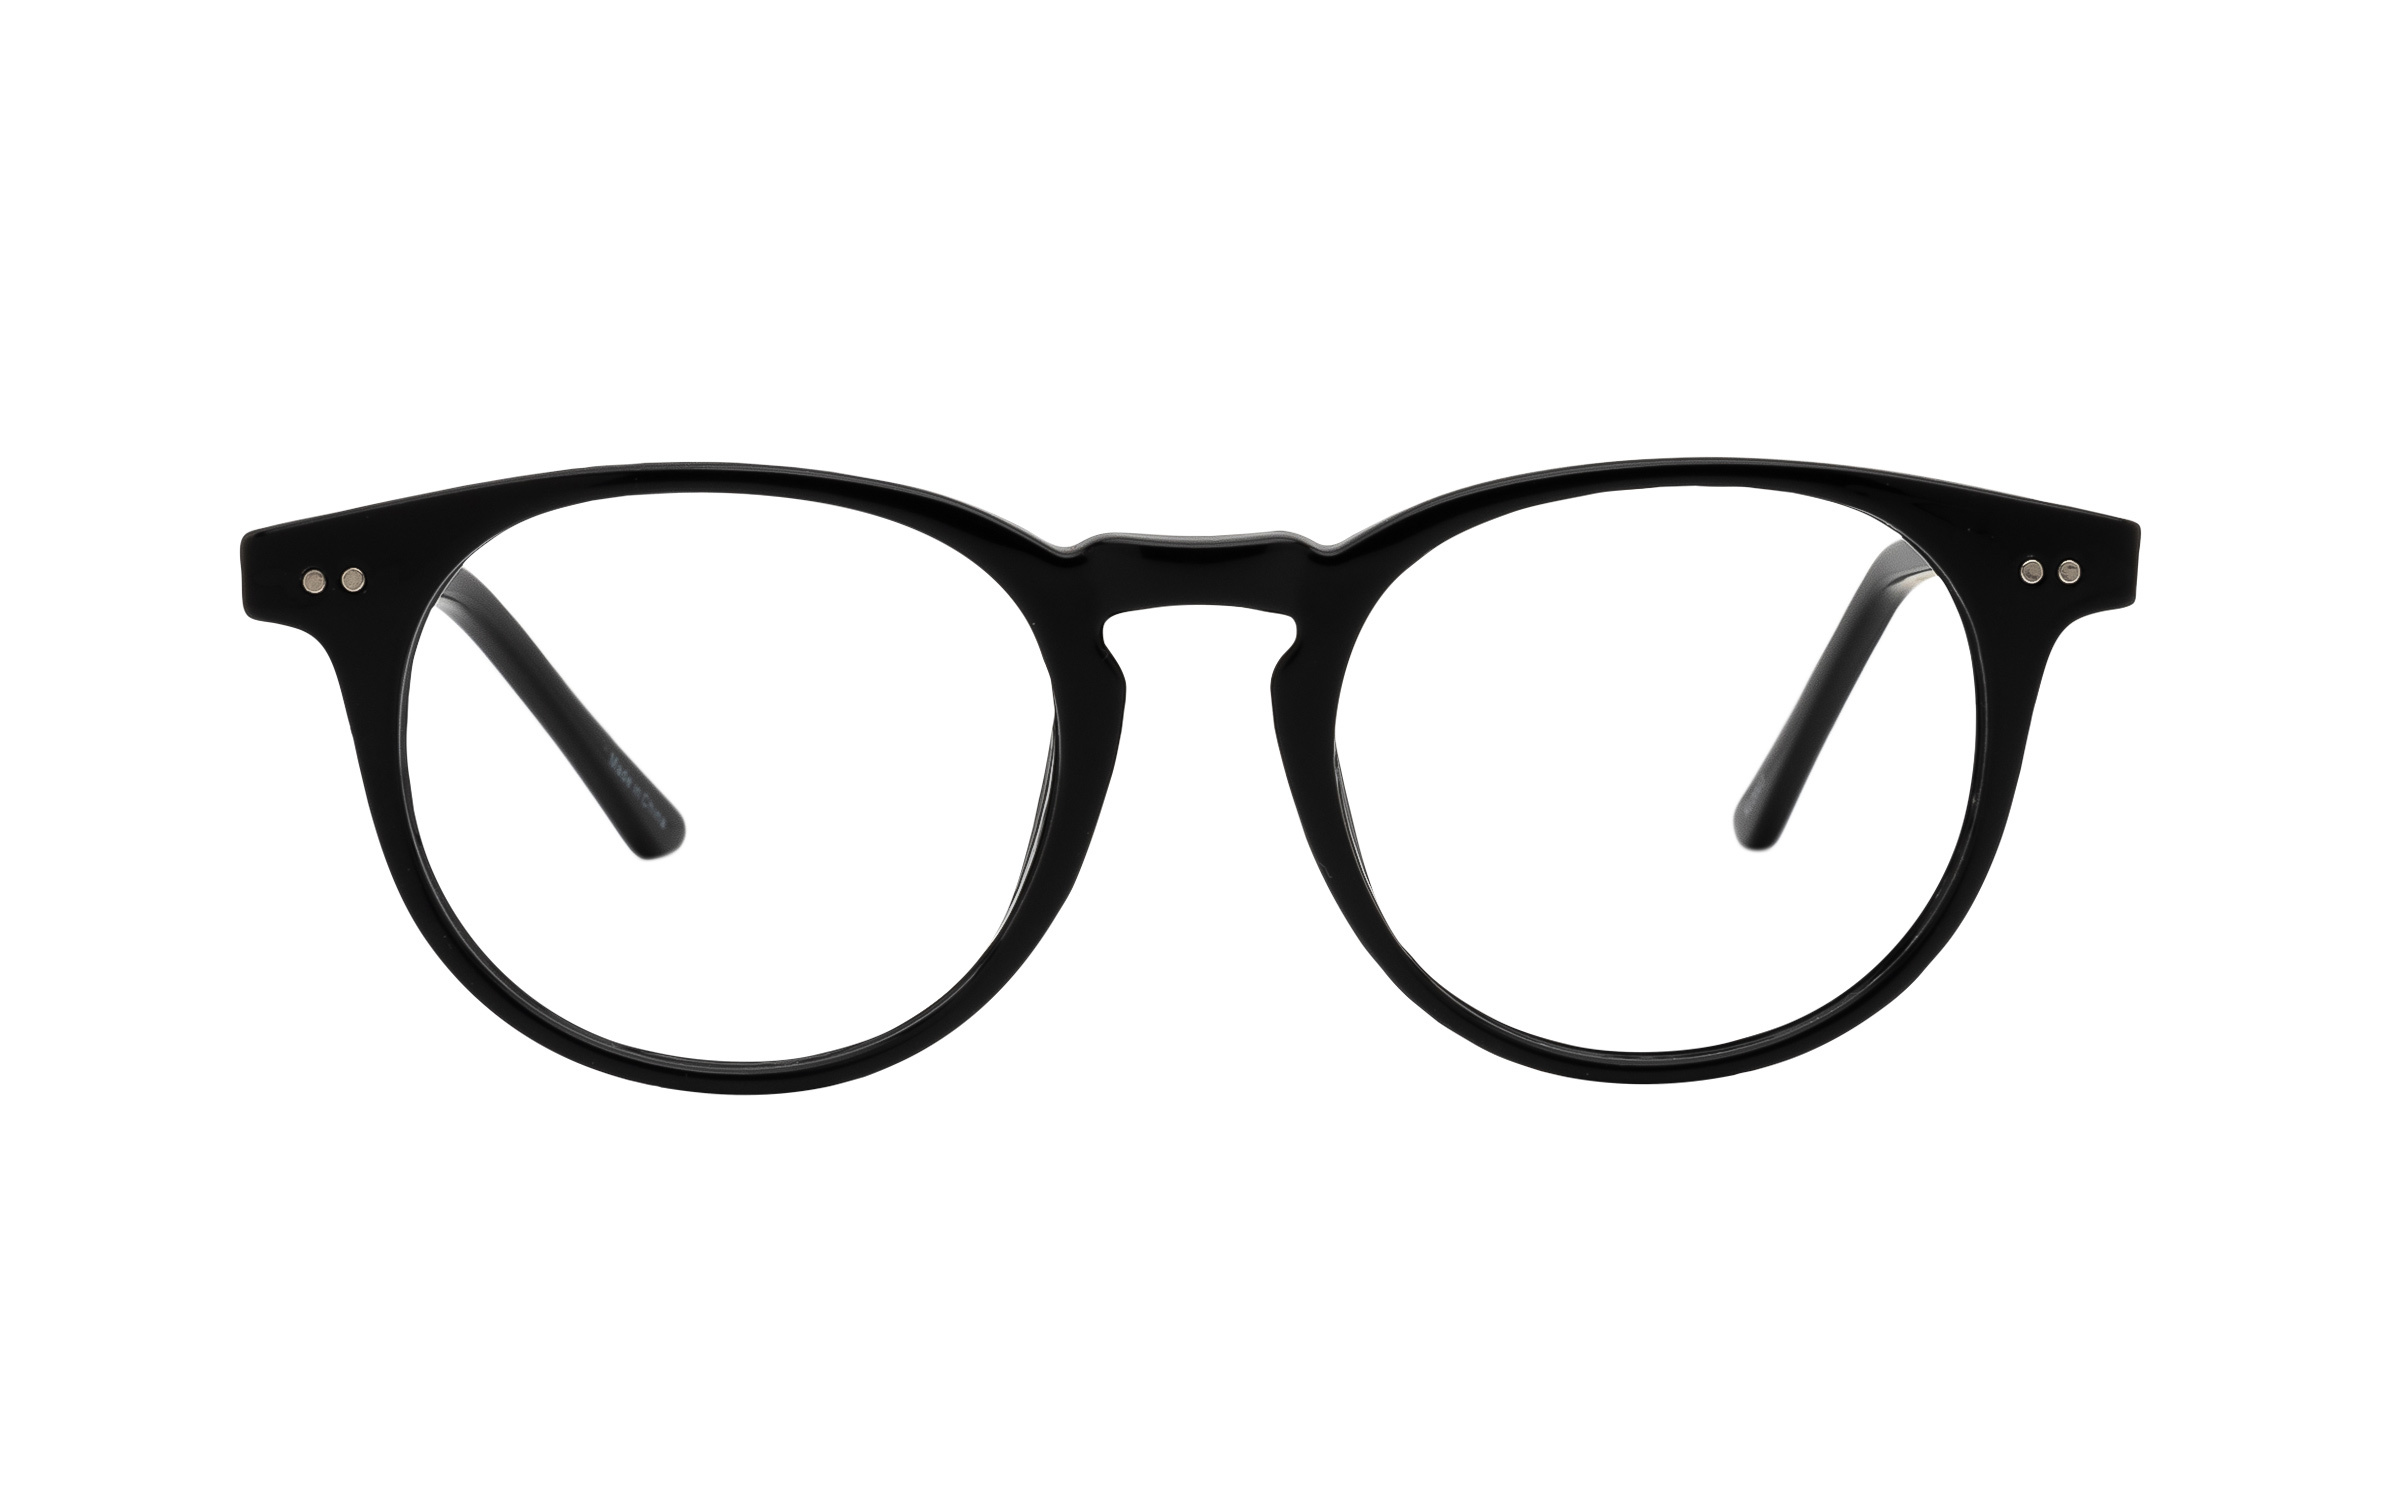 Clearly Basics Red Lake COL145 C03 (47) Eyeglasses and Frame in Black